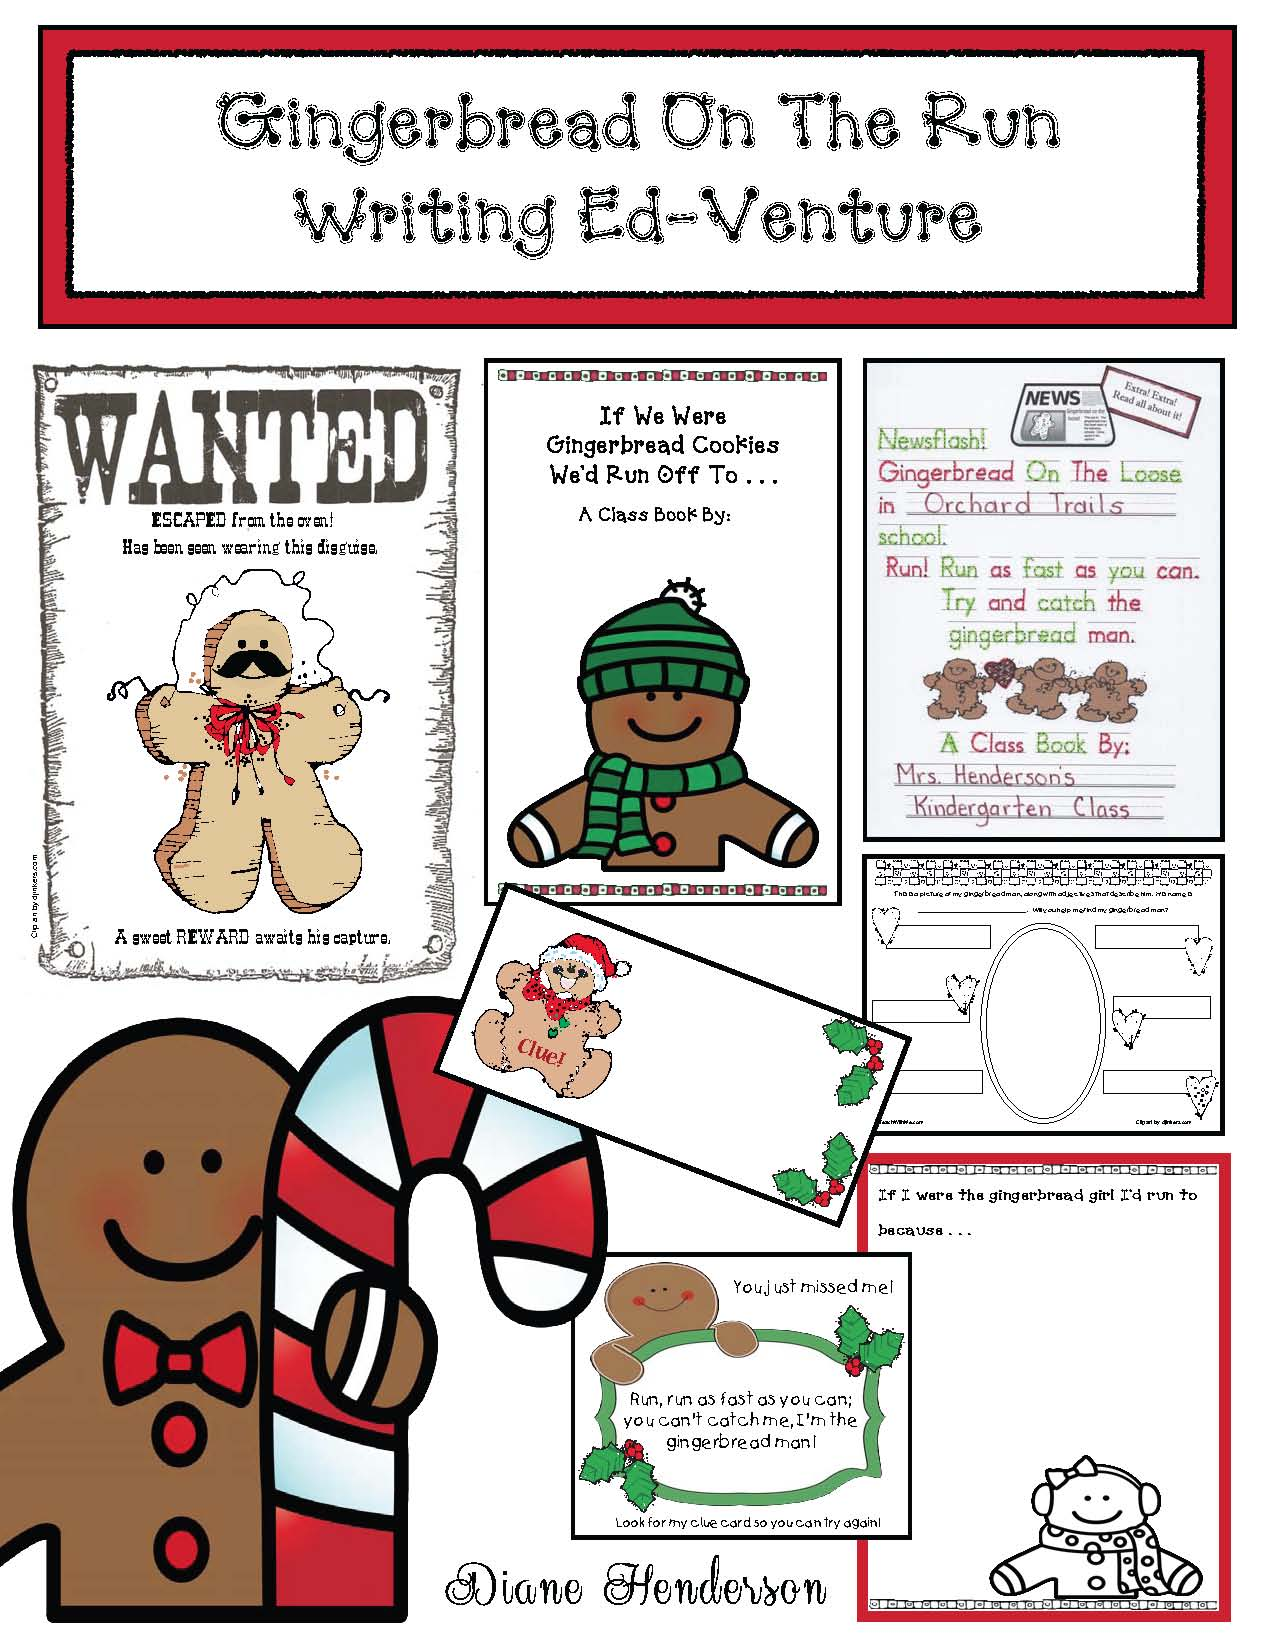 gingerbread activities, gingerbread crafts, gingerbread games, gingerbread writing prompts, common core gingerbread, color activities,  color games